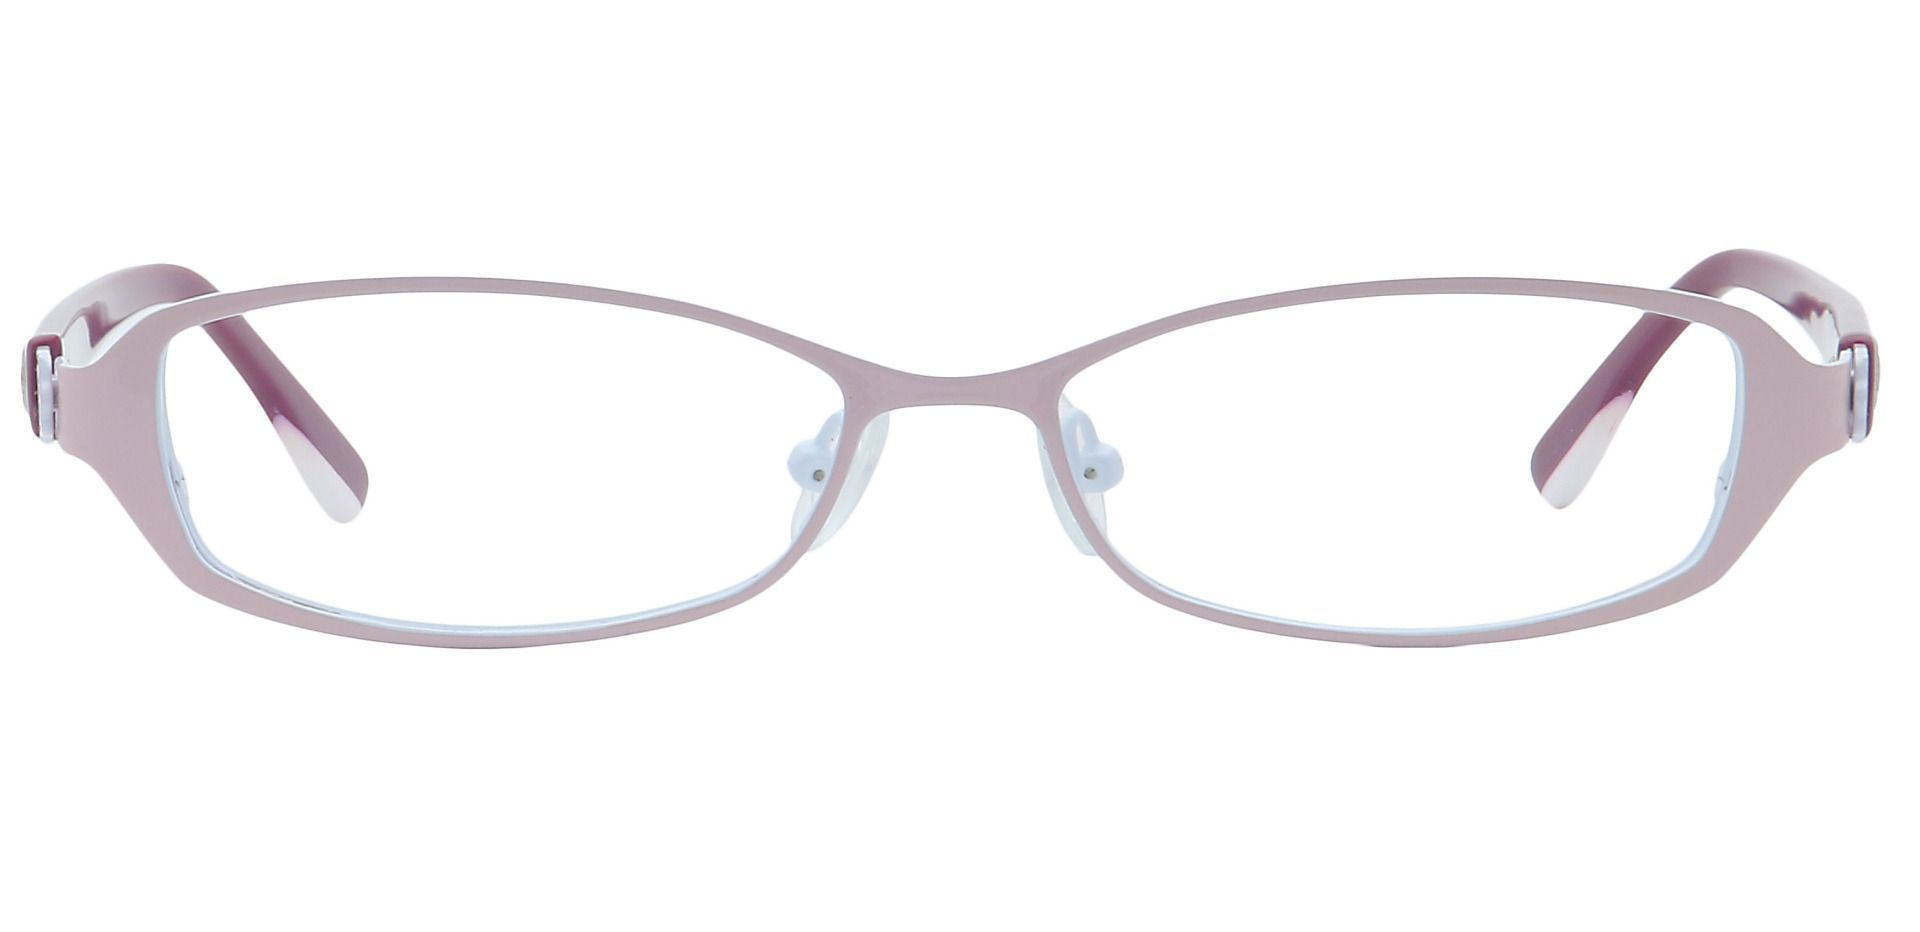 Tanya Oval Non-Rx Glasses - Pink